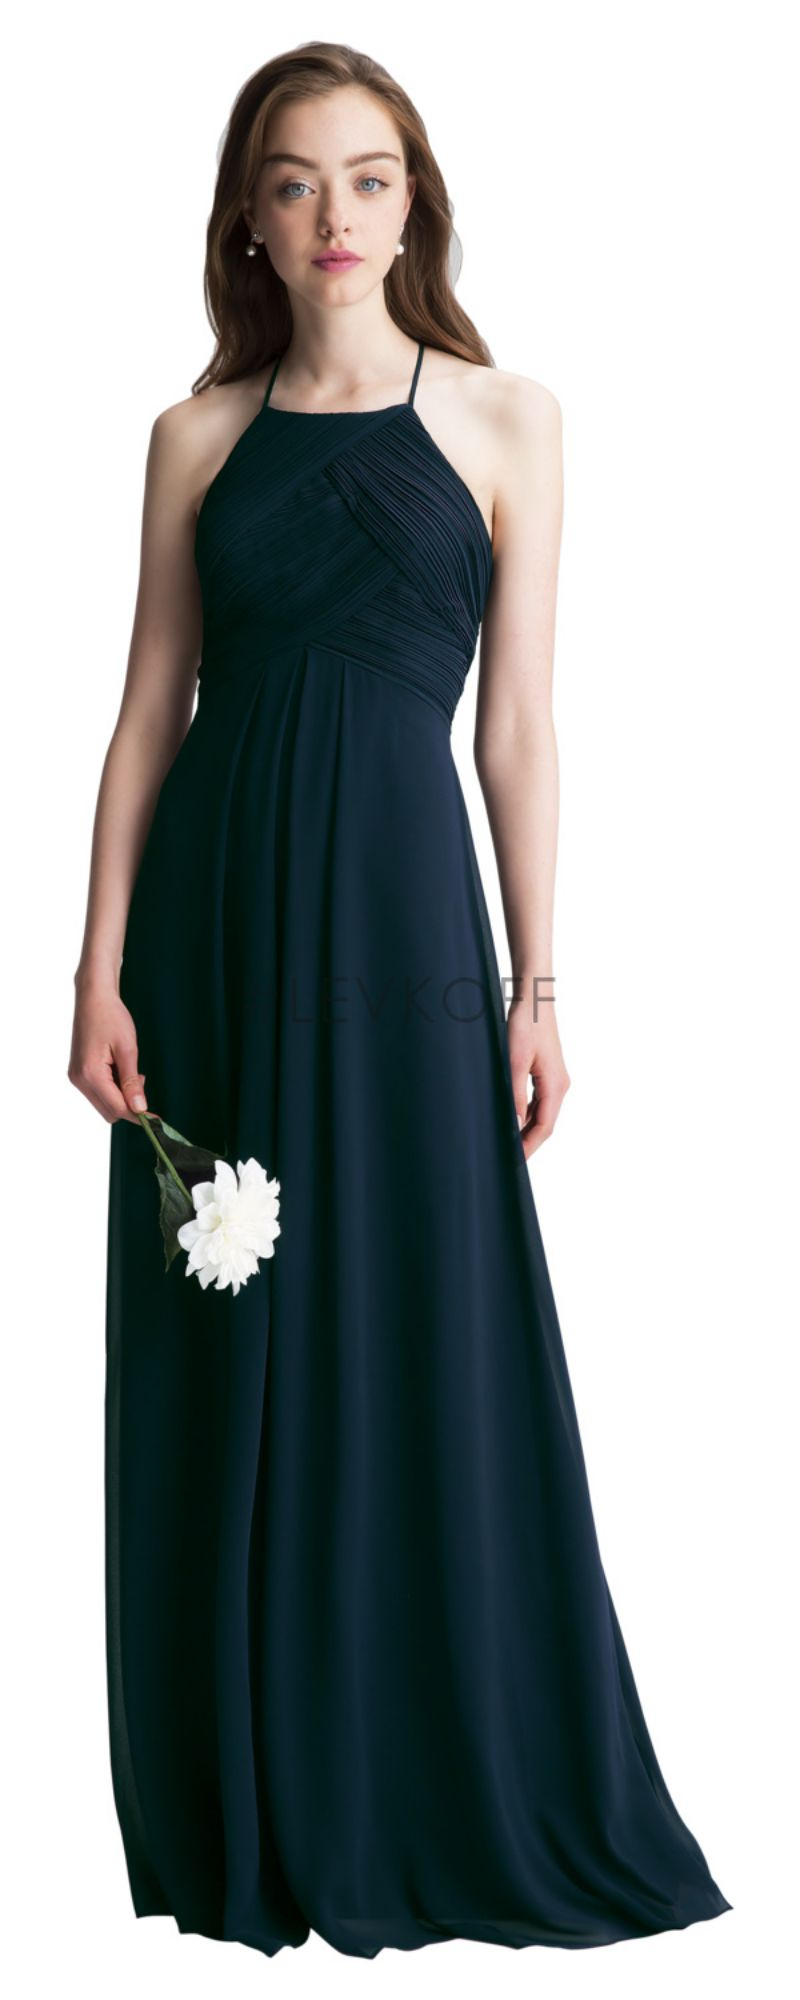 Bill levkoff bridesmaid dresses levkoff 7001bill levkoff bill levkoff bridesmaids levkoff 7001 loading zoom ombrellifo Images